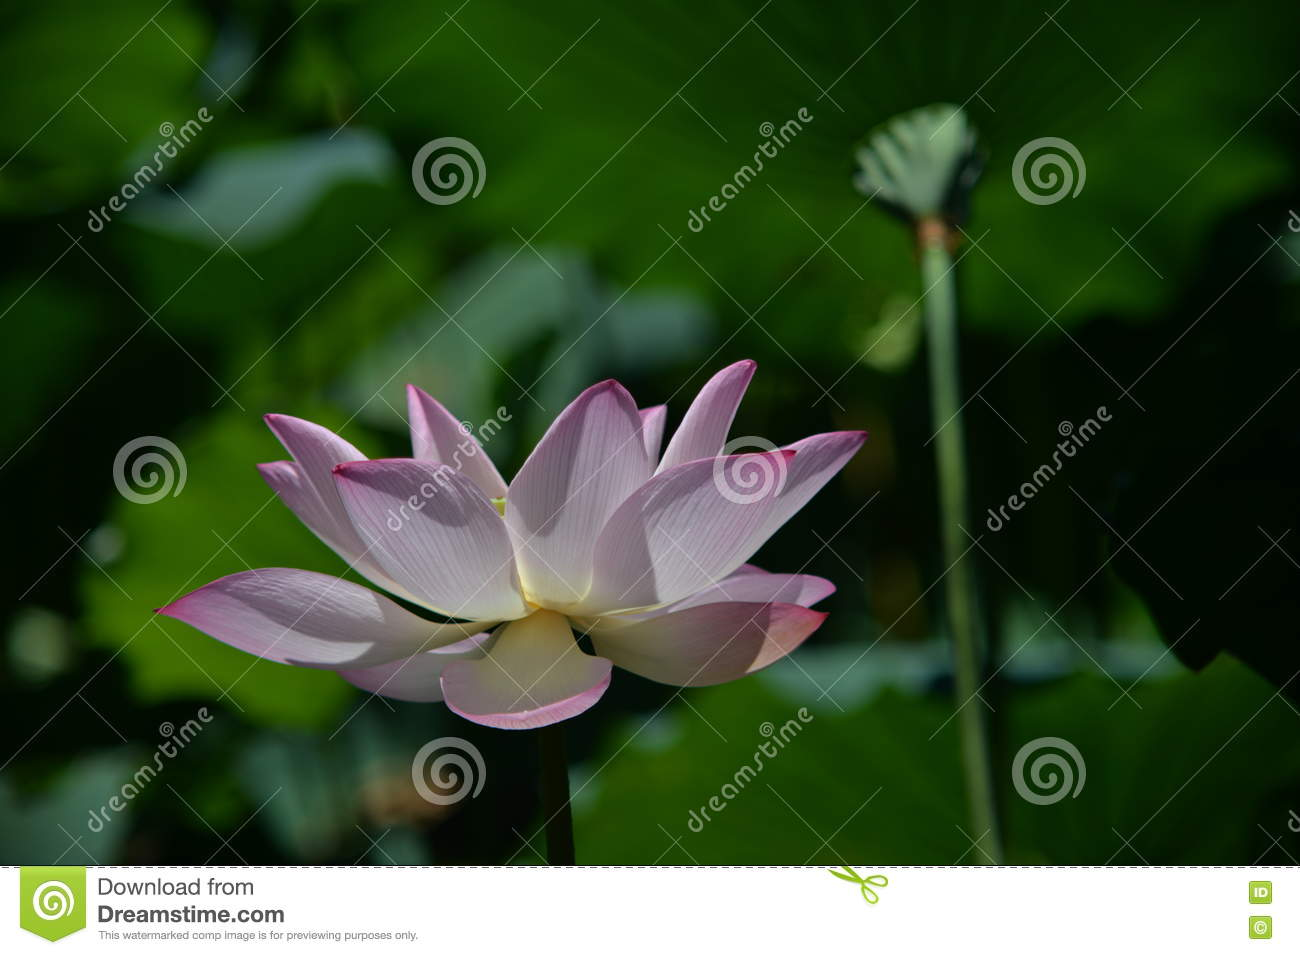 A lotus flower along with a lotus root in same frame stock image download a lotus flower along with a lotus root in same frame stock image image mightylinksfo